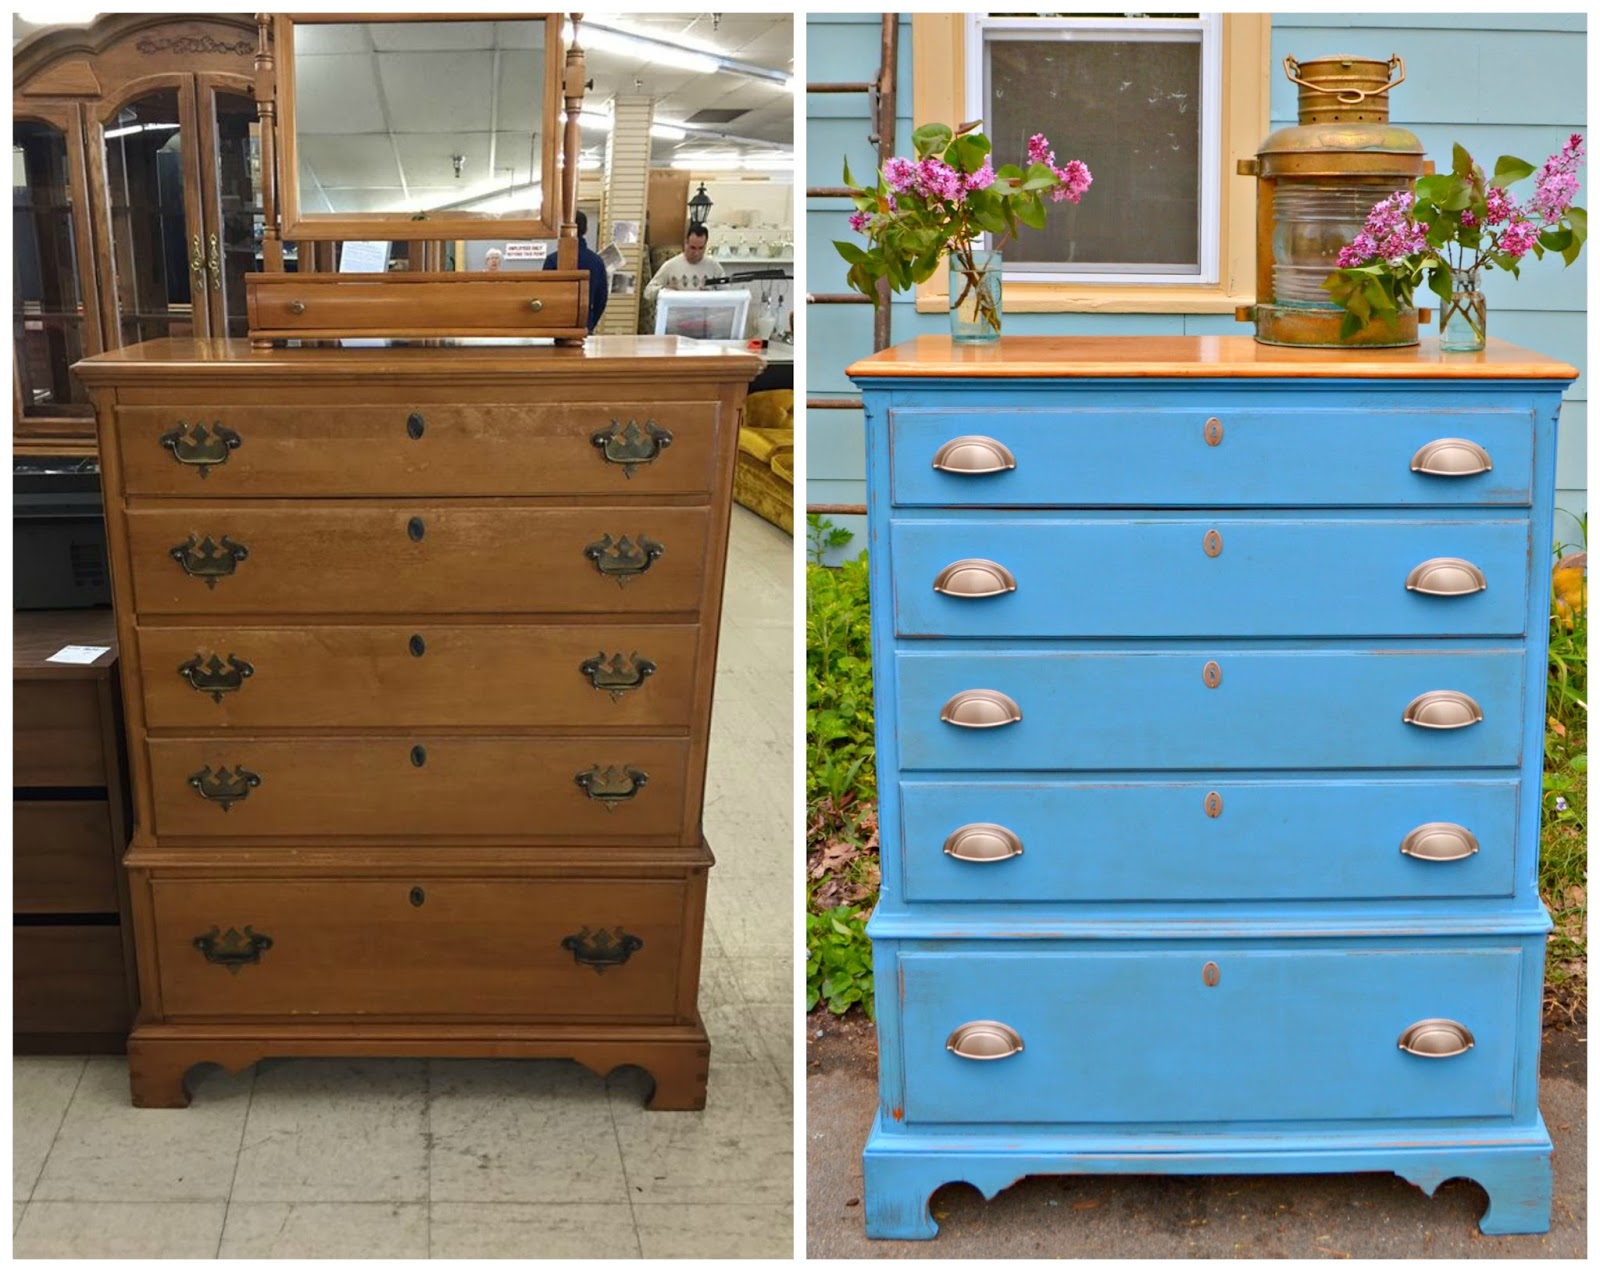 Heir and Space: A Vintage Maple Dresser in Blue